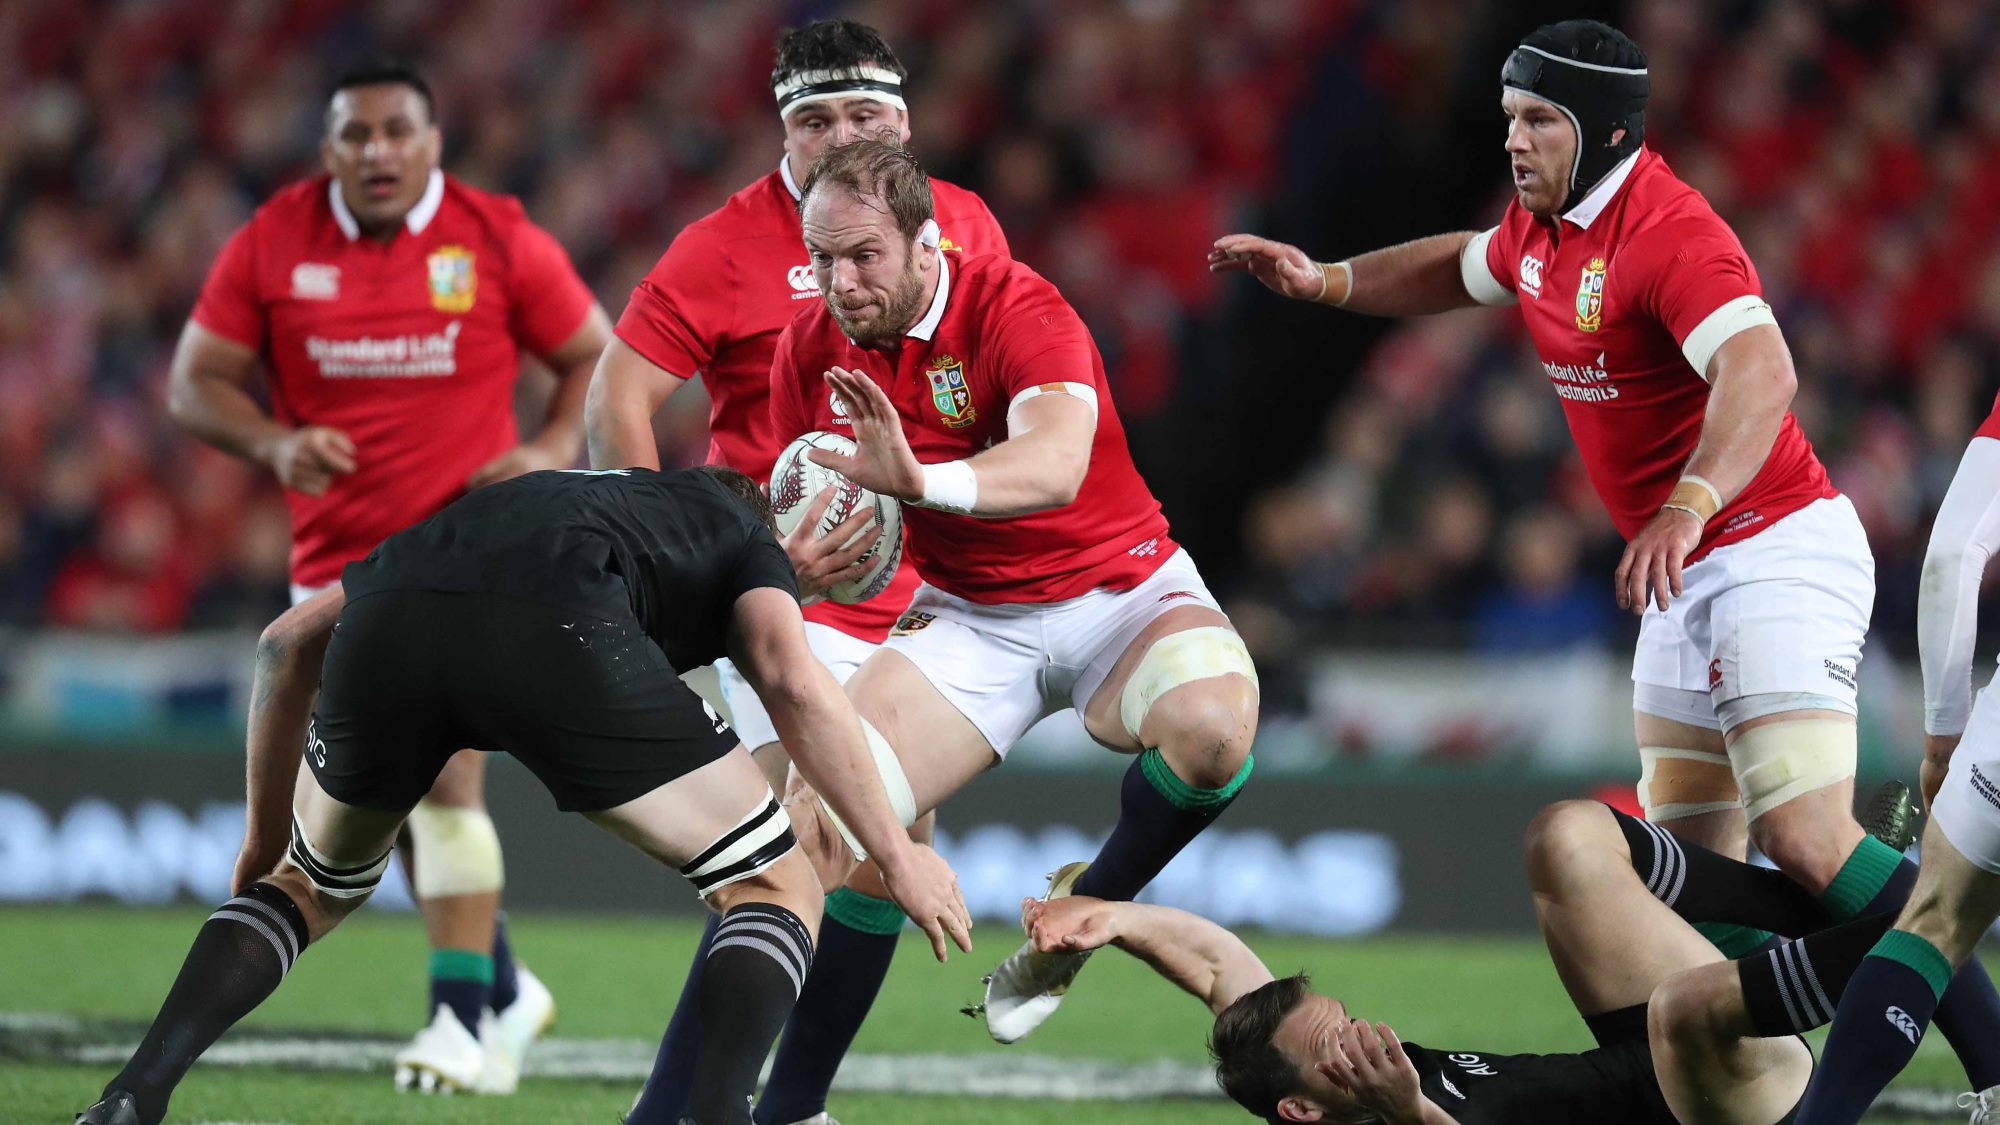 Gatland hails skipper Jones after Grand Slam win